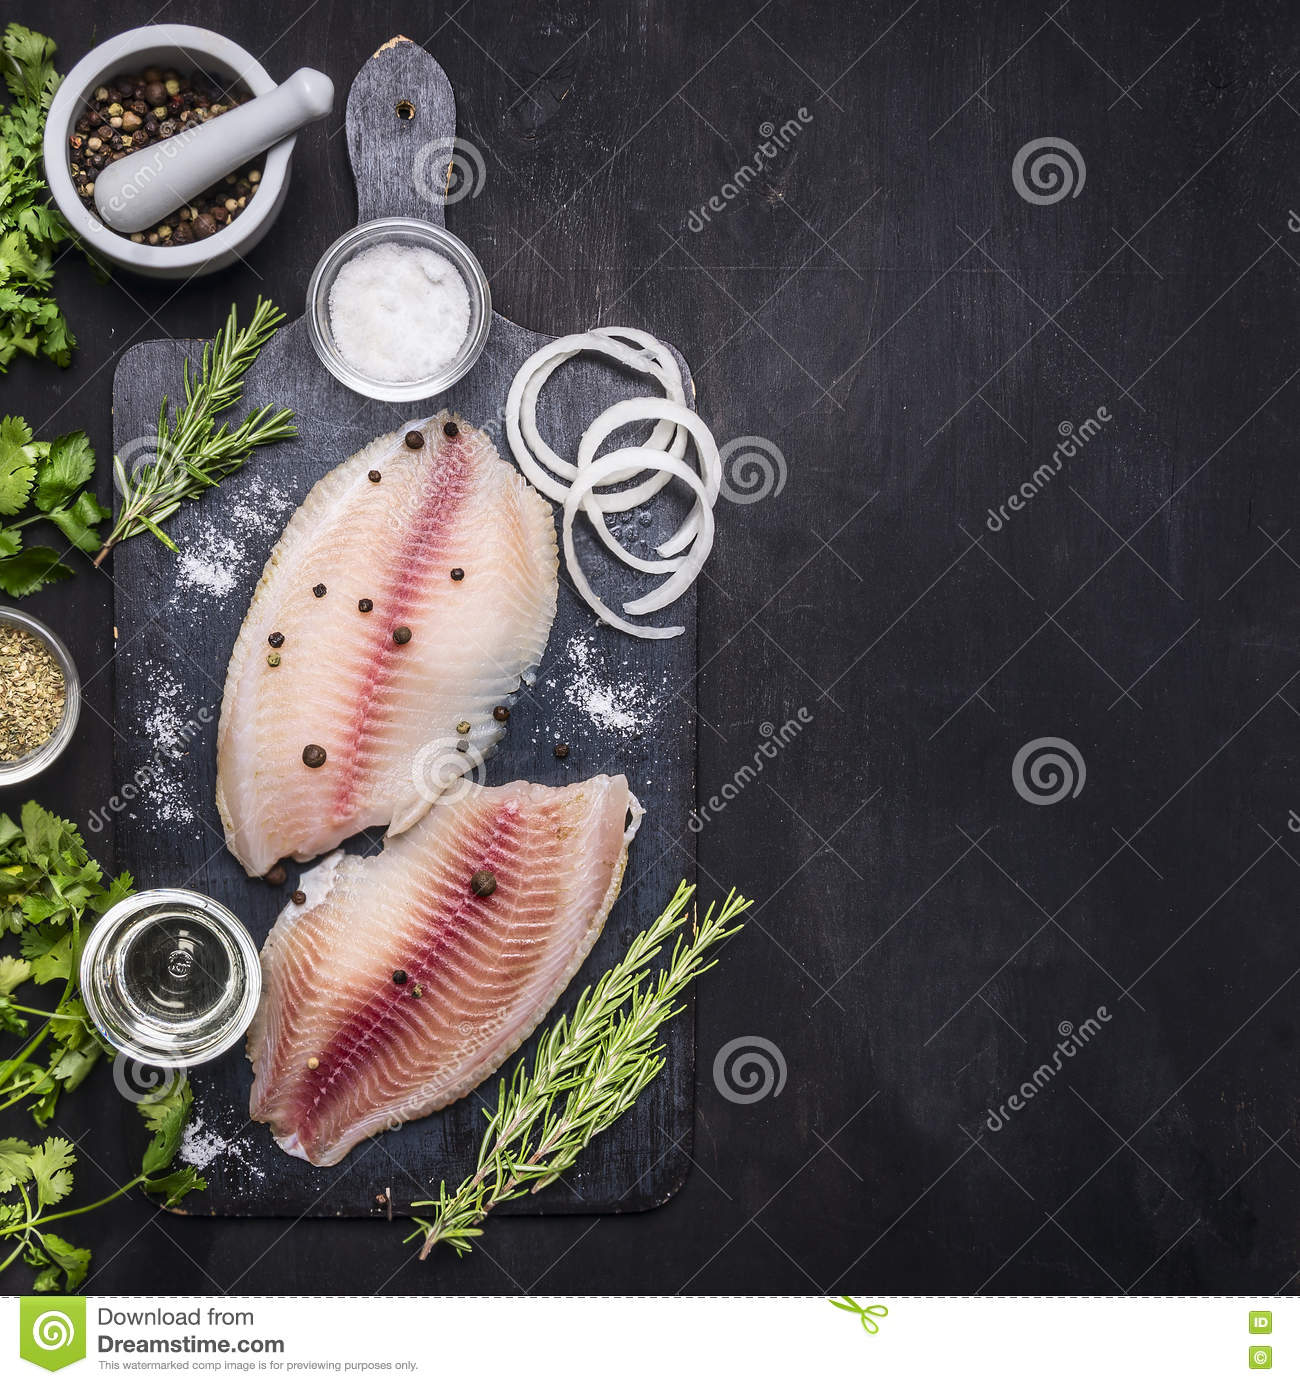 Cooking fish with herbs, butter and lemon, and pepper in mortar border place for text